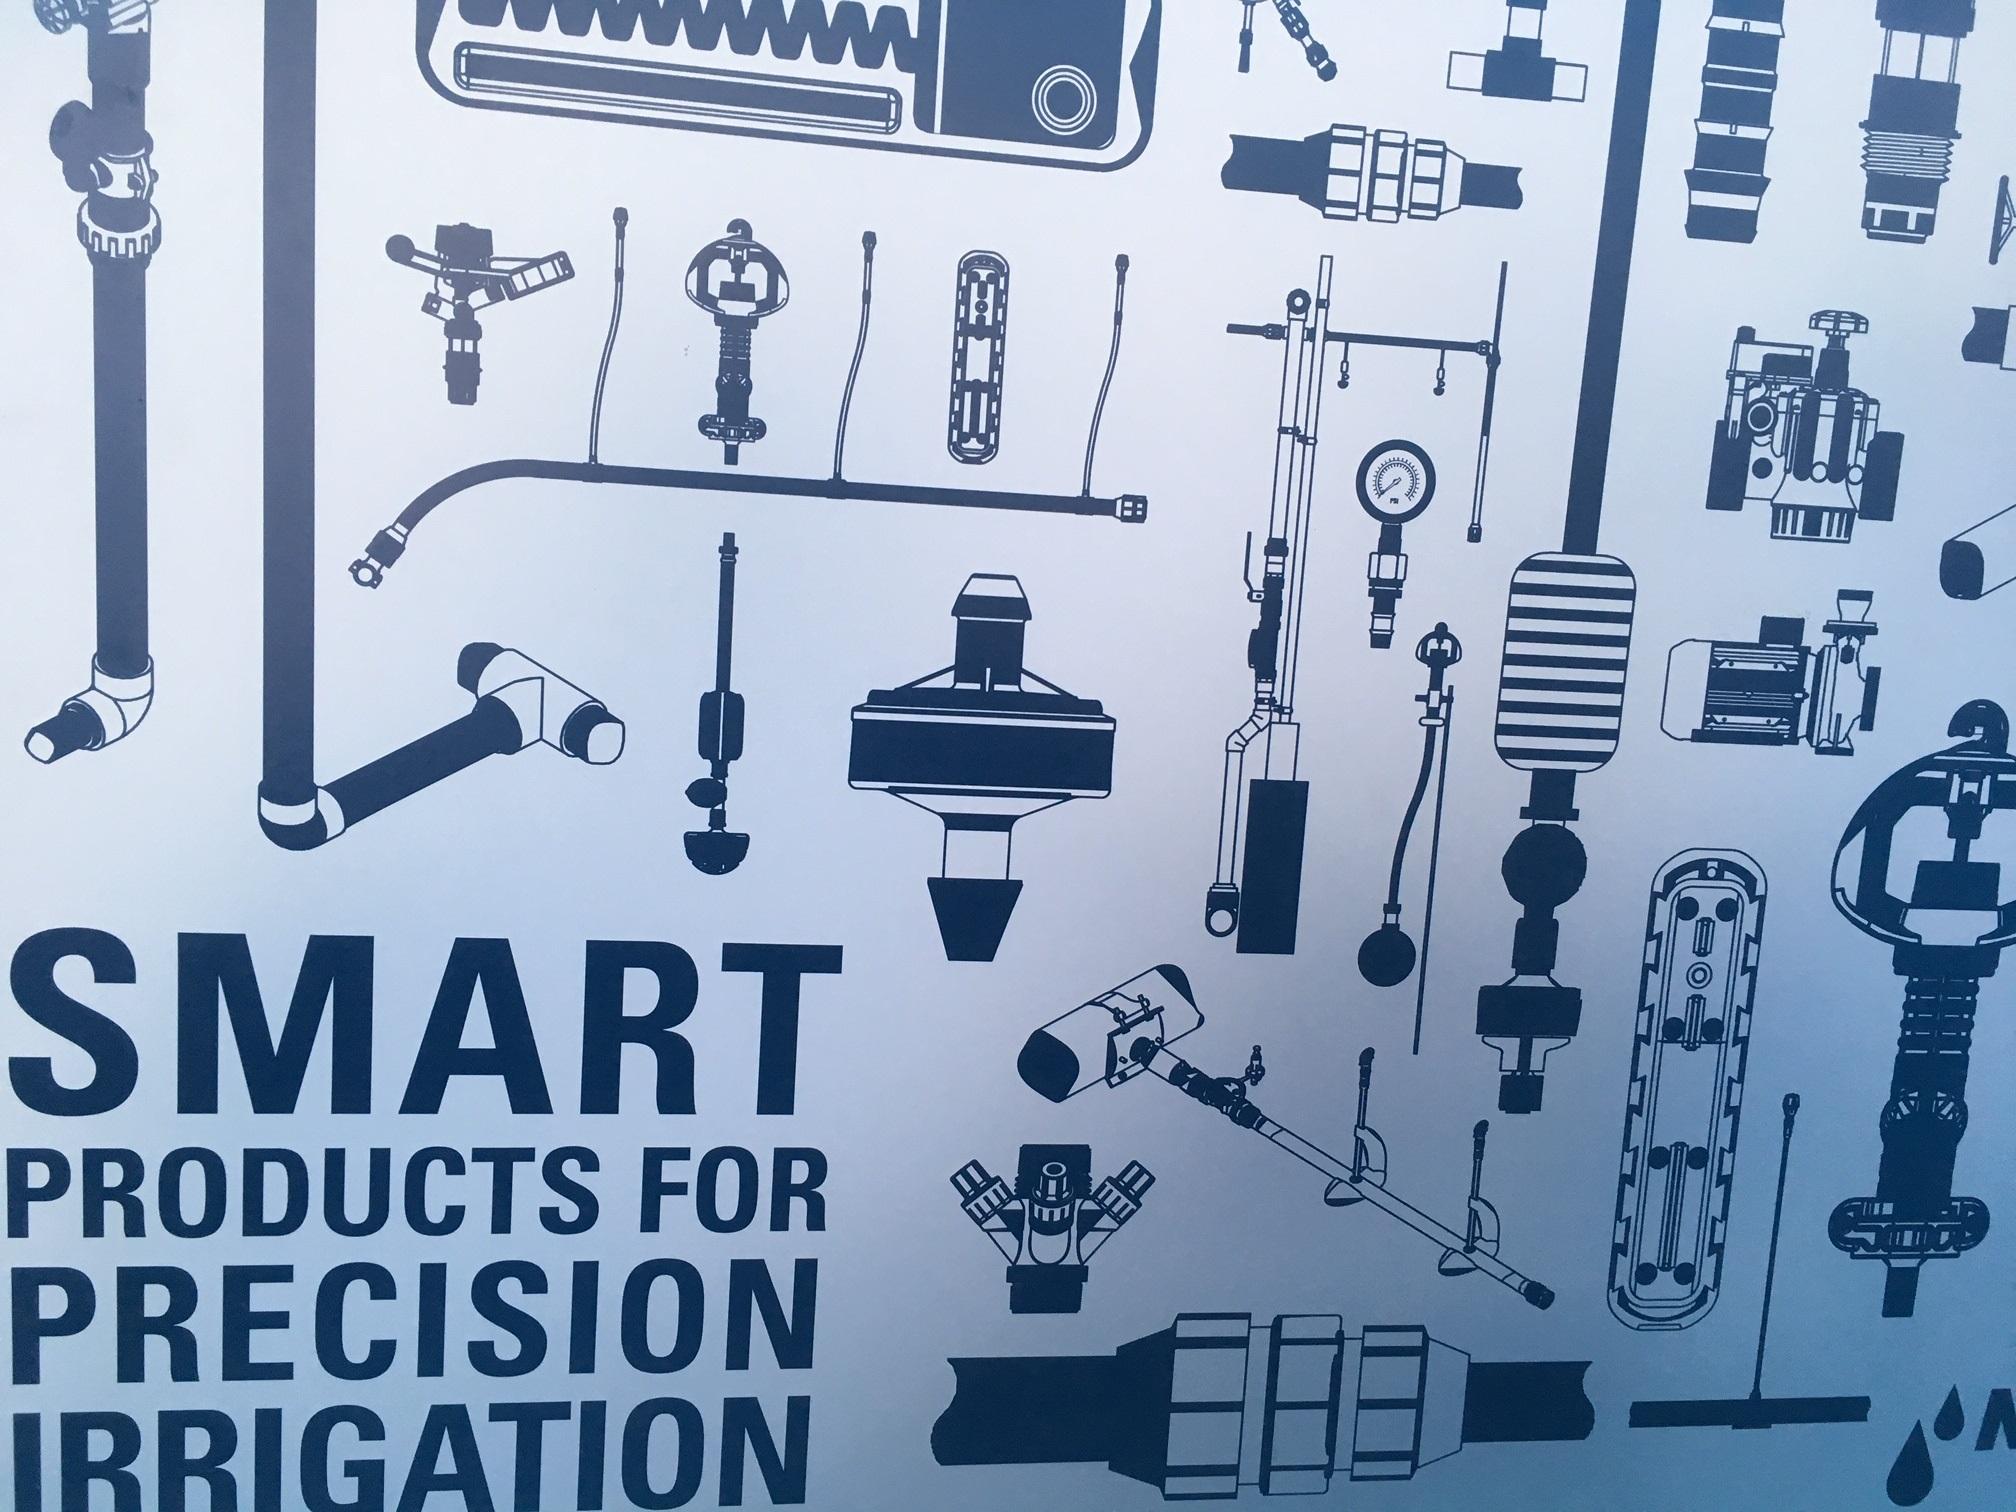 smart_products_for_precision_irrigation.jpg